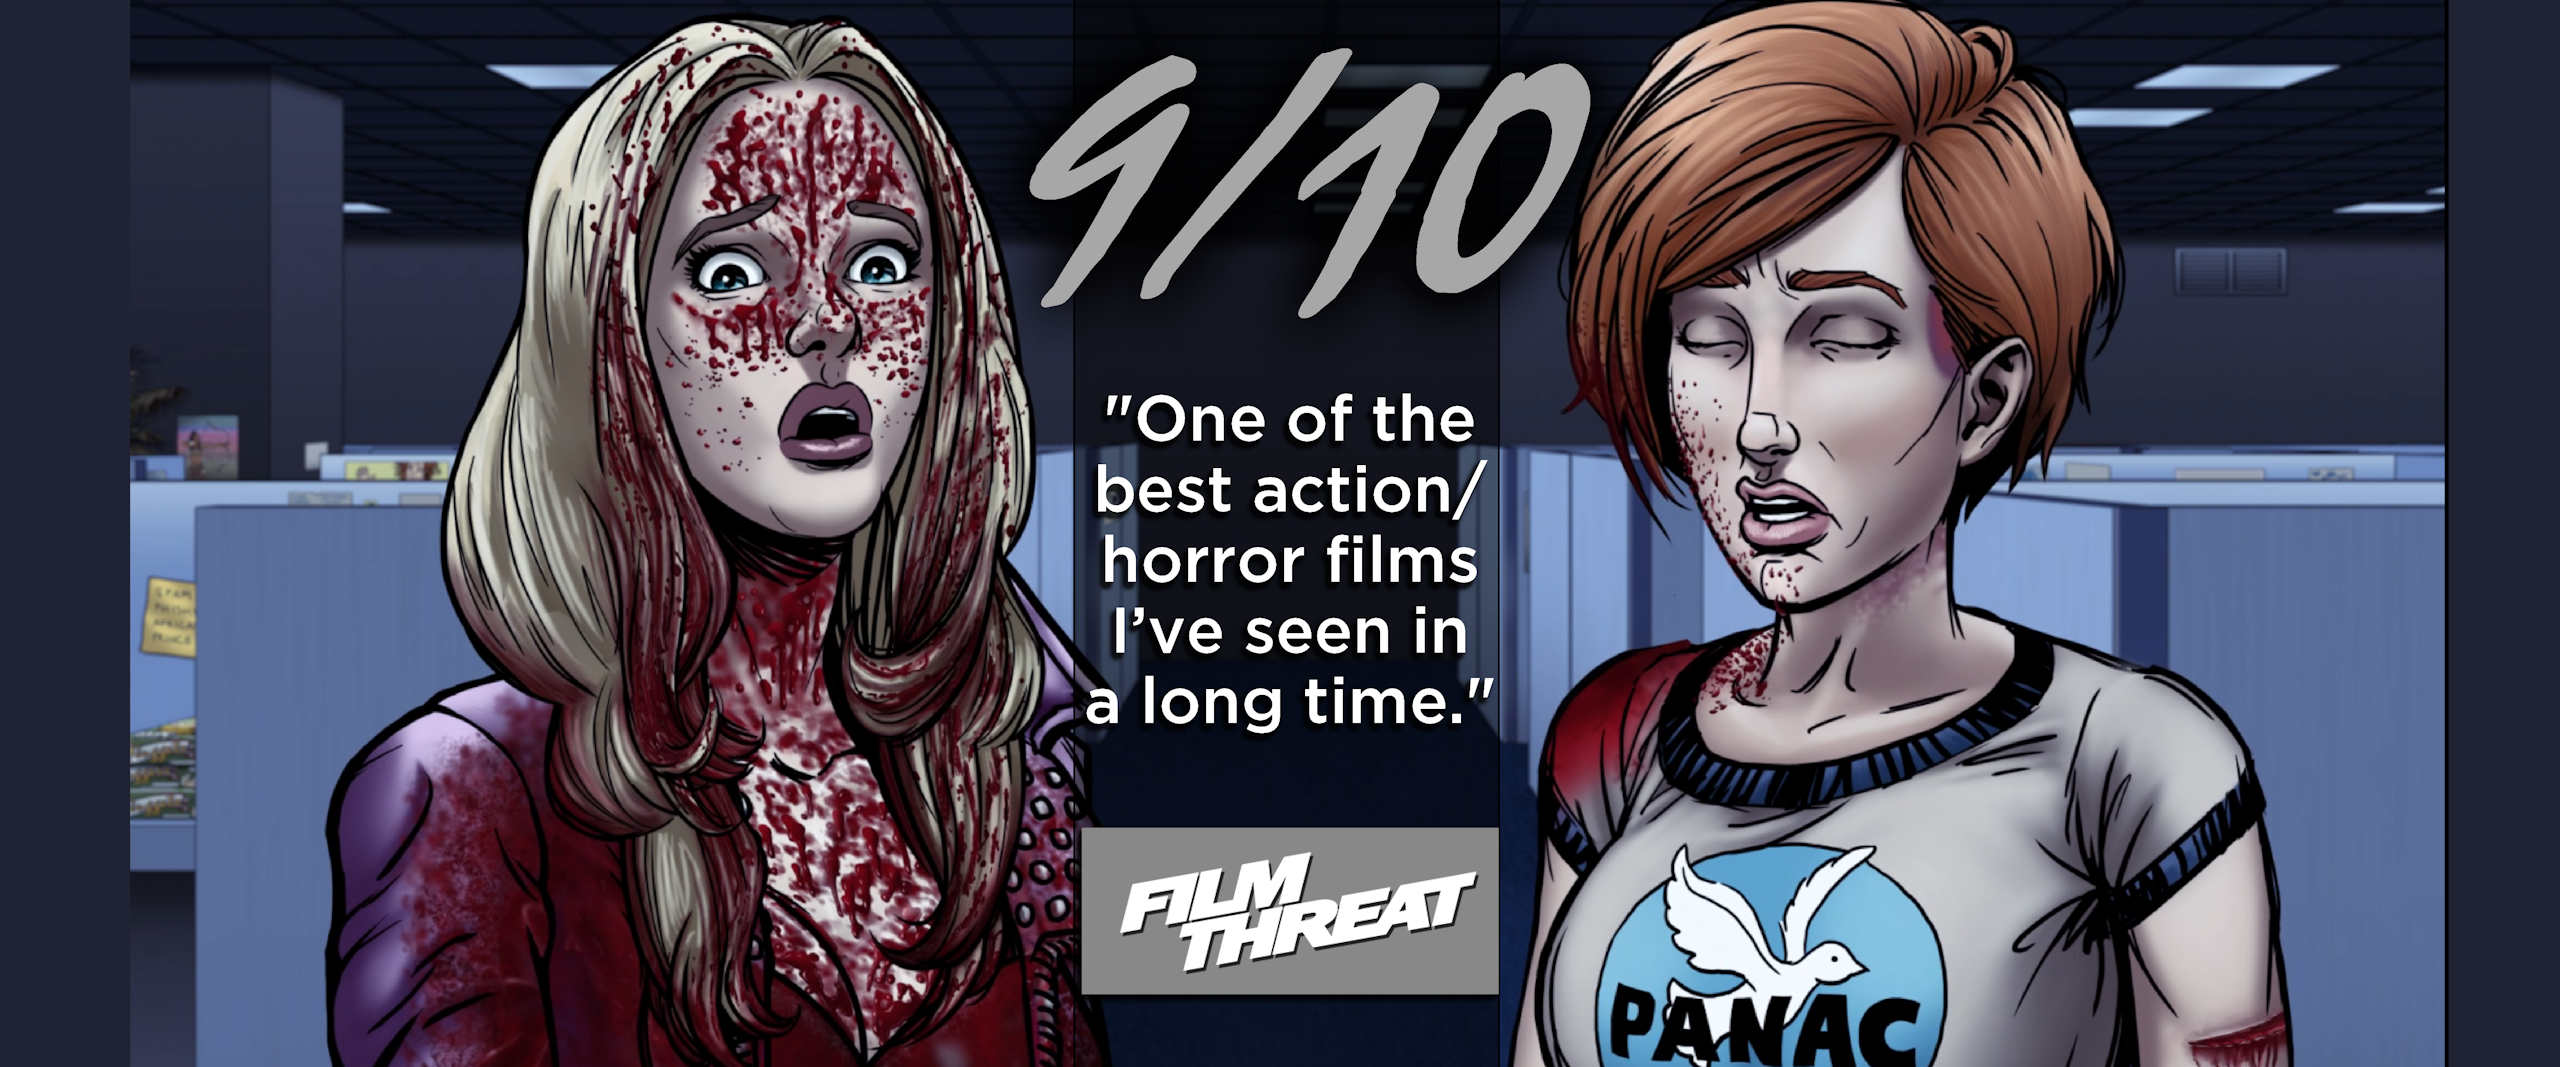 Film Threat review